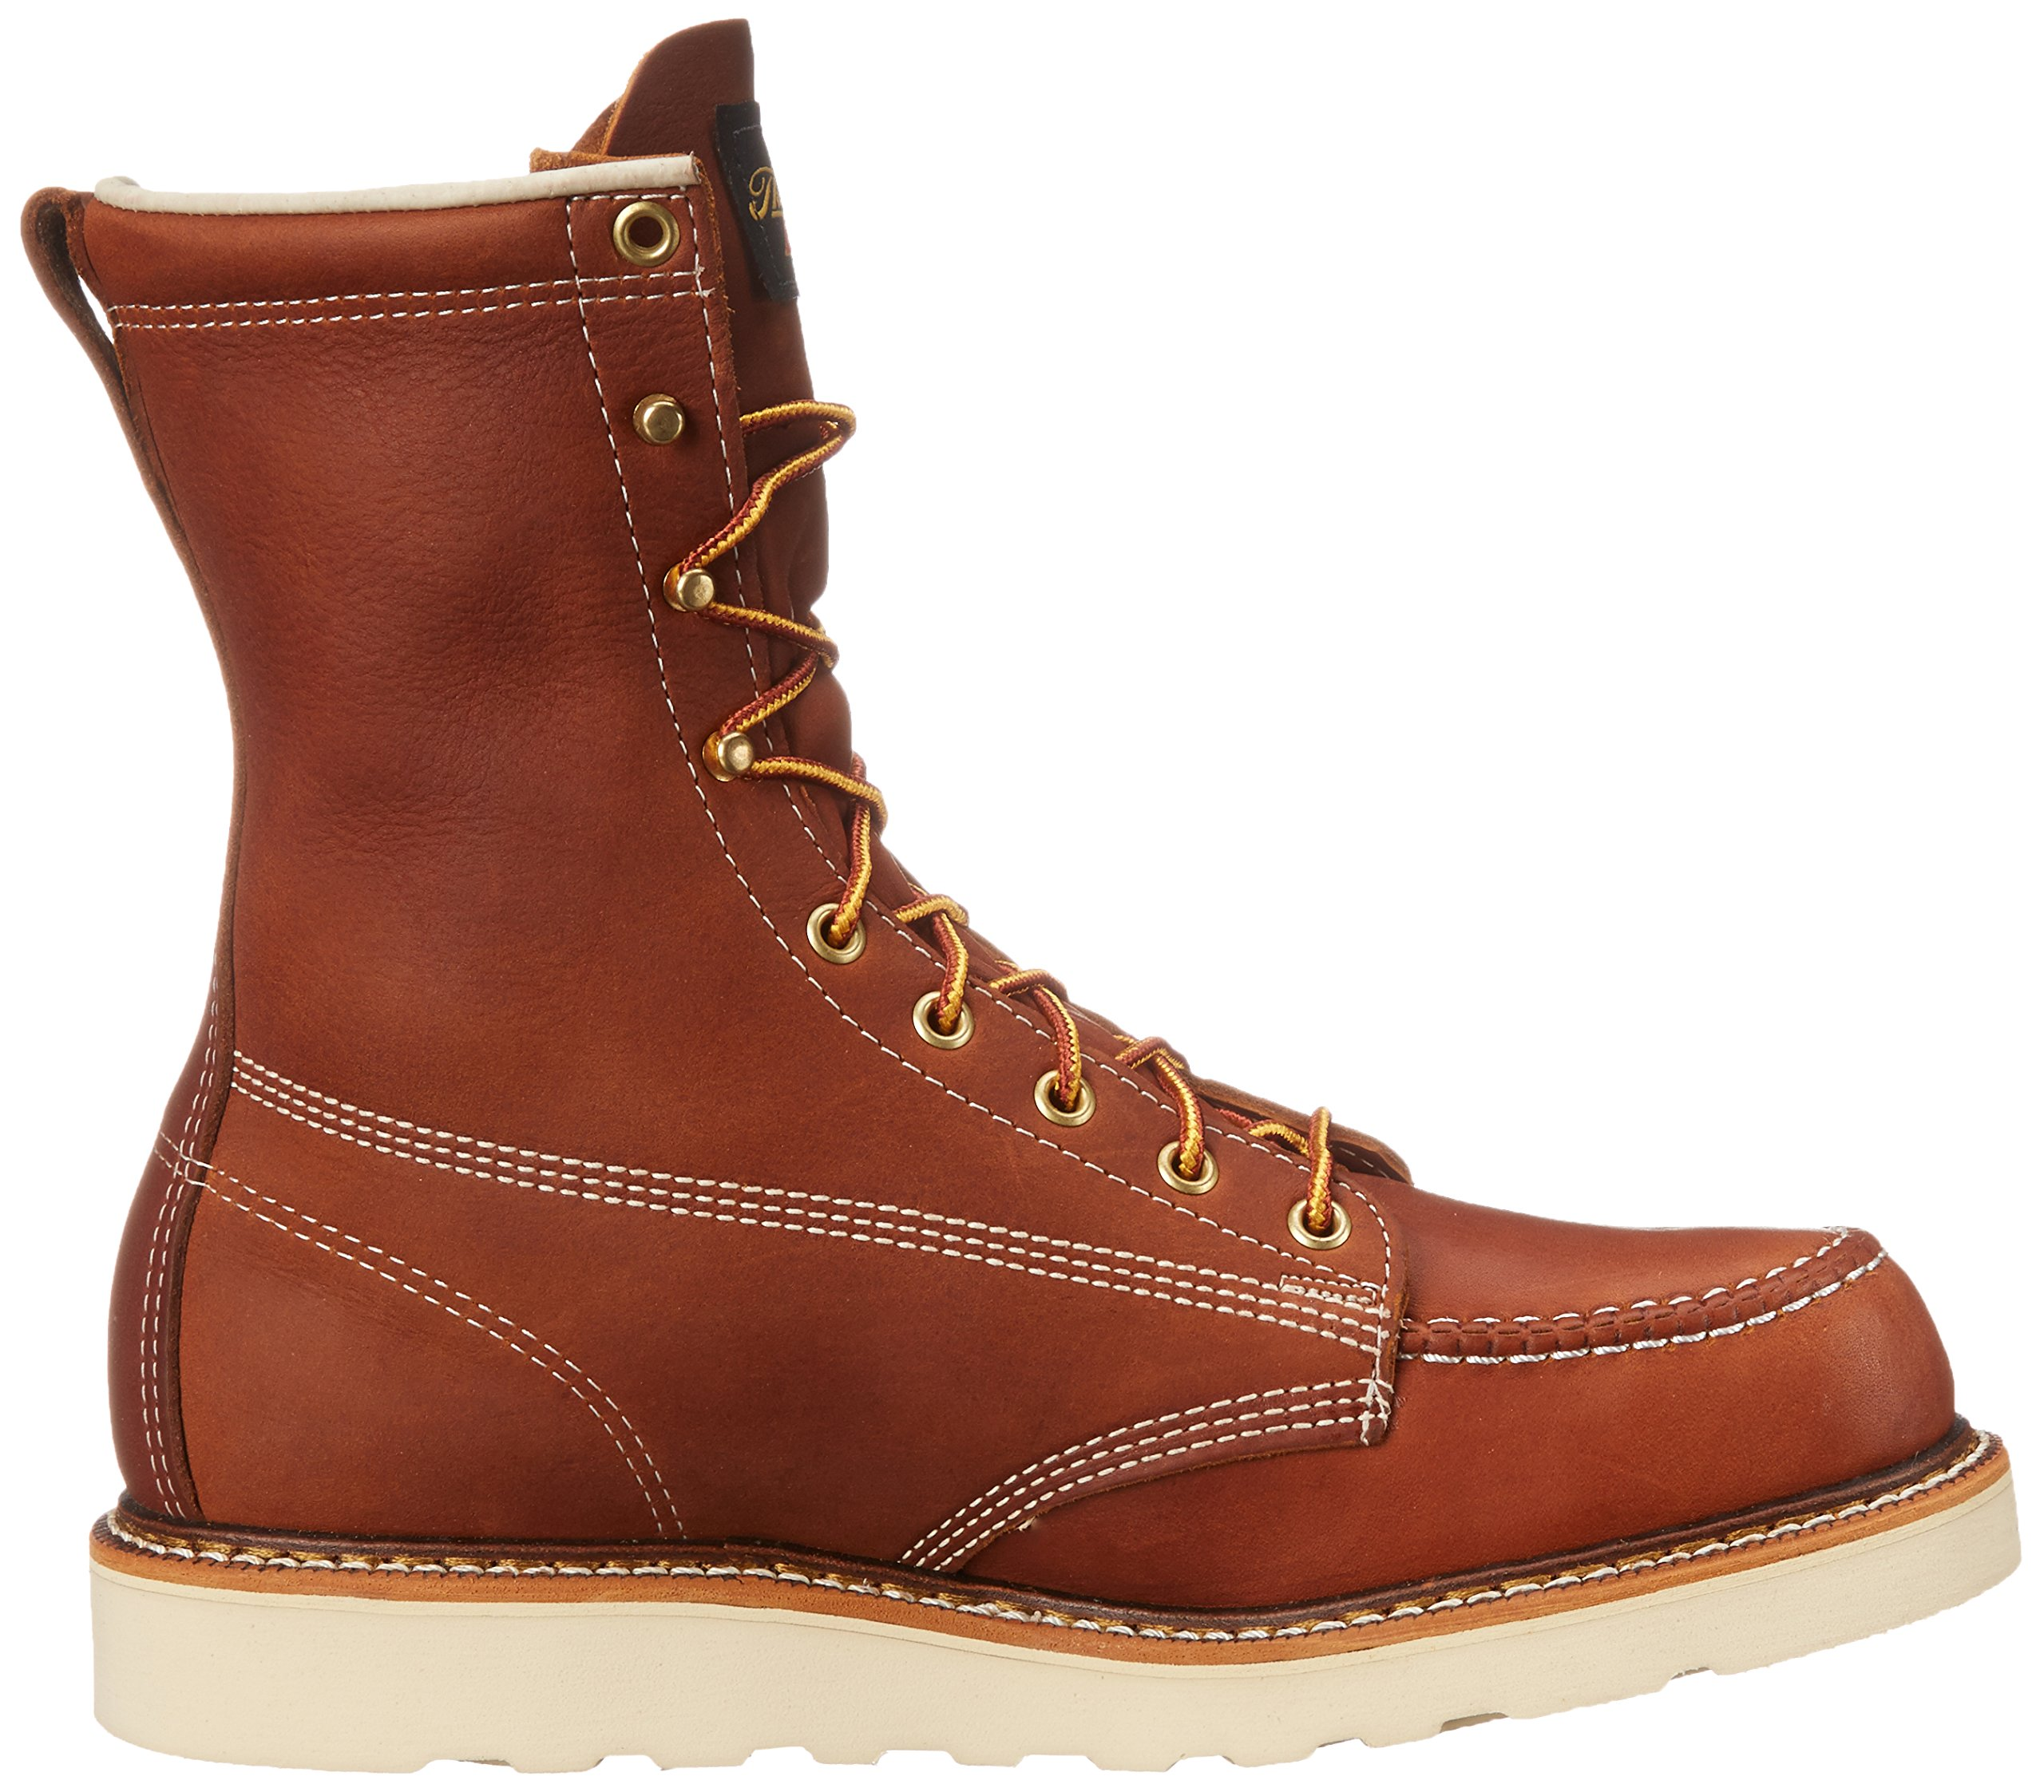 Thorogood Heritage 8'' Safety Toe Work Boot, Tobacco Oil Tanned, 10 EE US by Thorogood (Image #7)